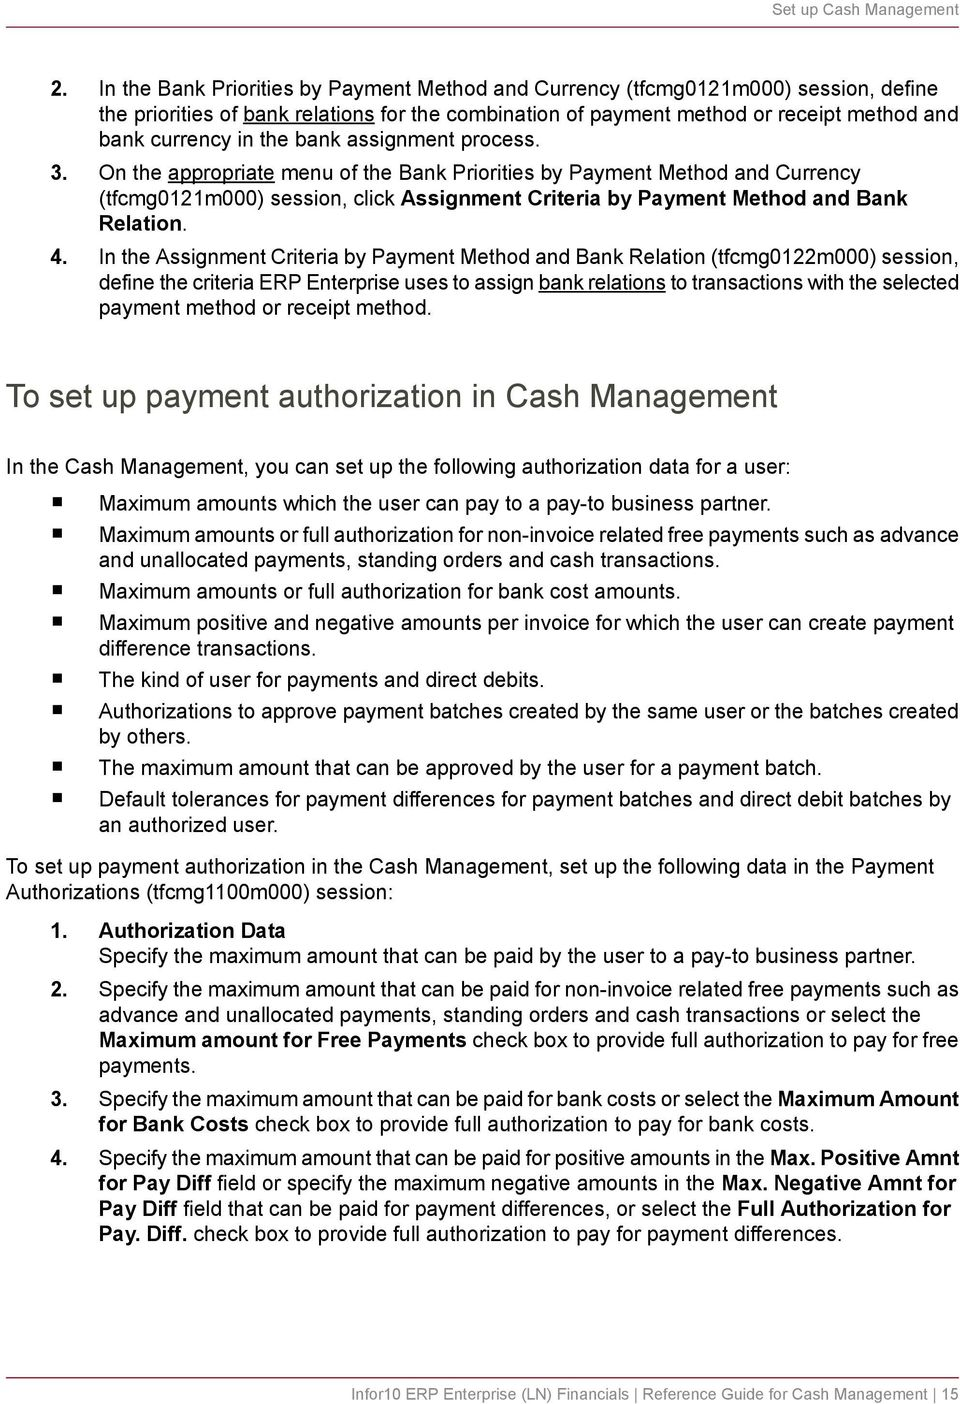 bank assignment process. 3. On the appropriate menu of the Bank Priorities by Payment Method and Currency (tfcmg0121m000) session, click Assignment Criteria by Payment Method and Bank Relation. 4.